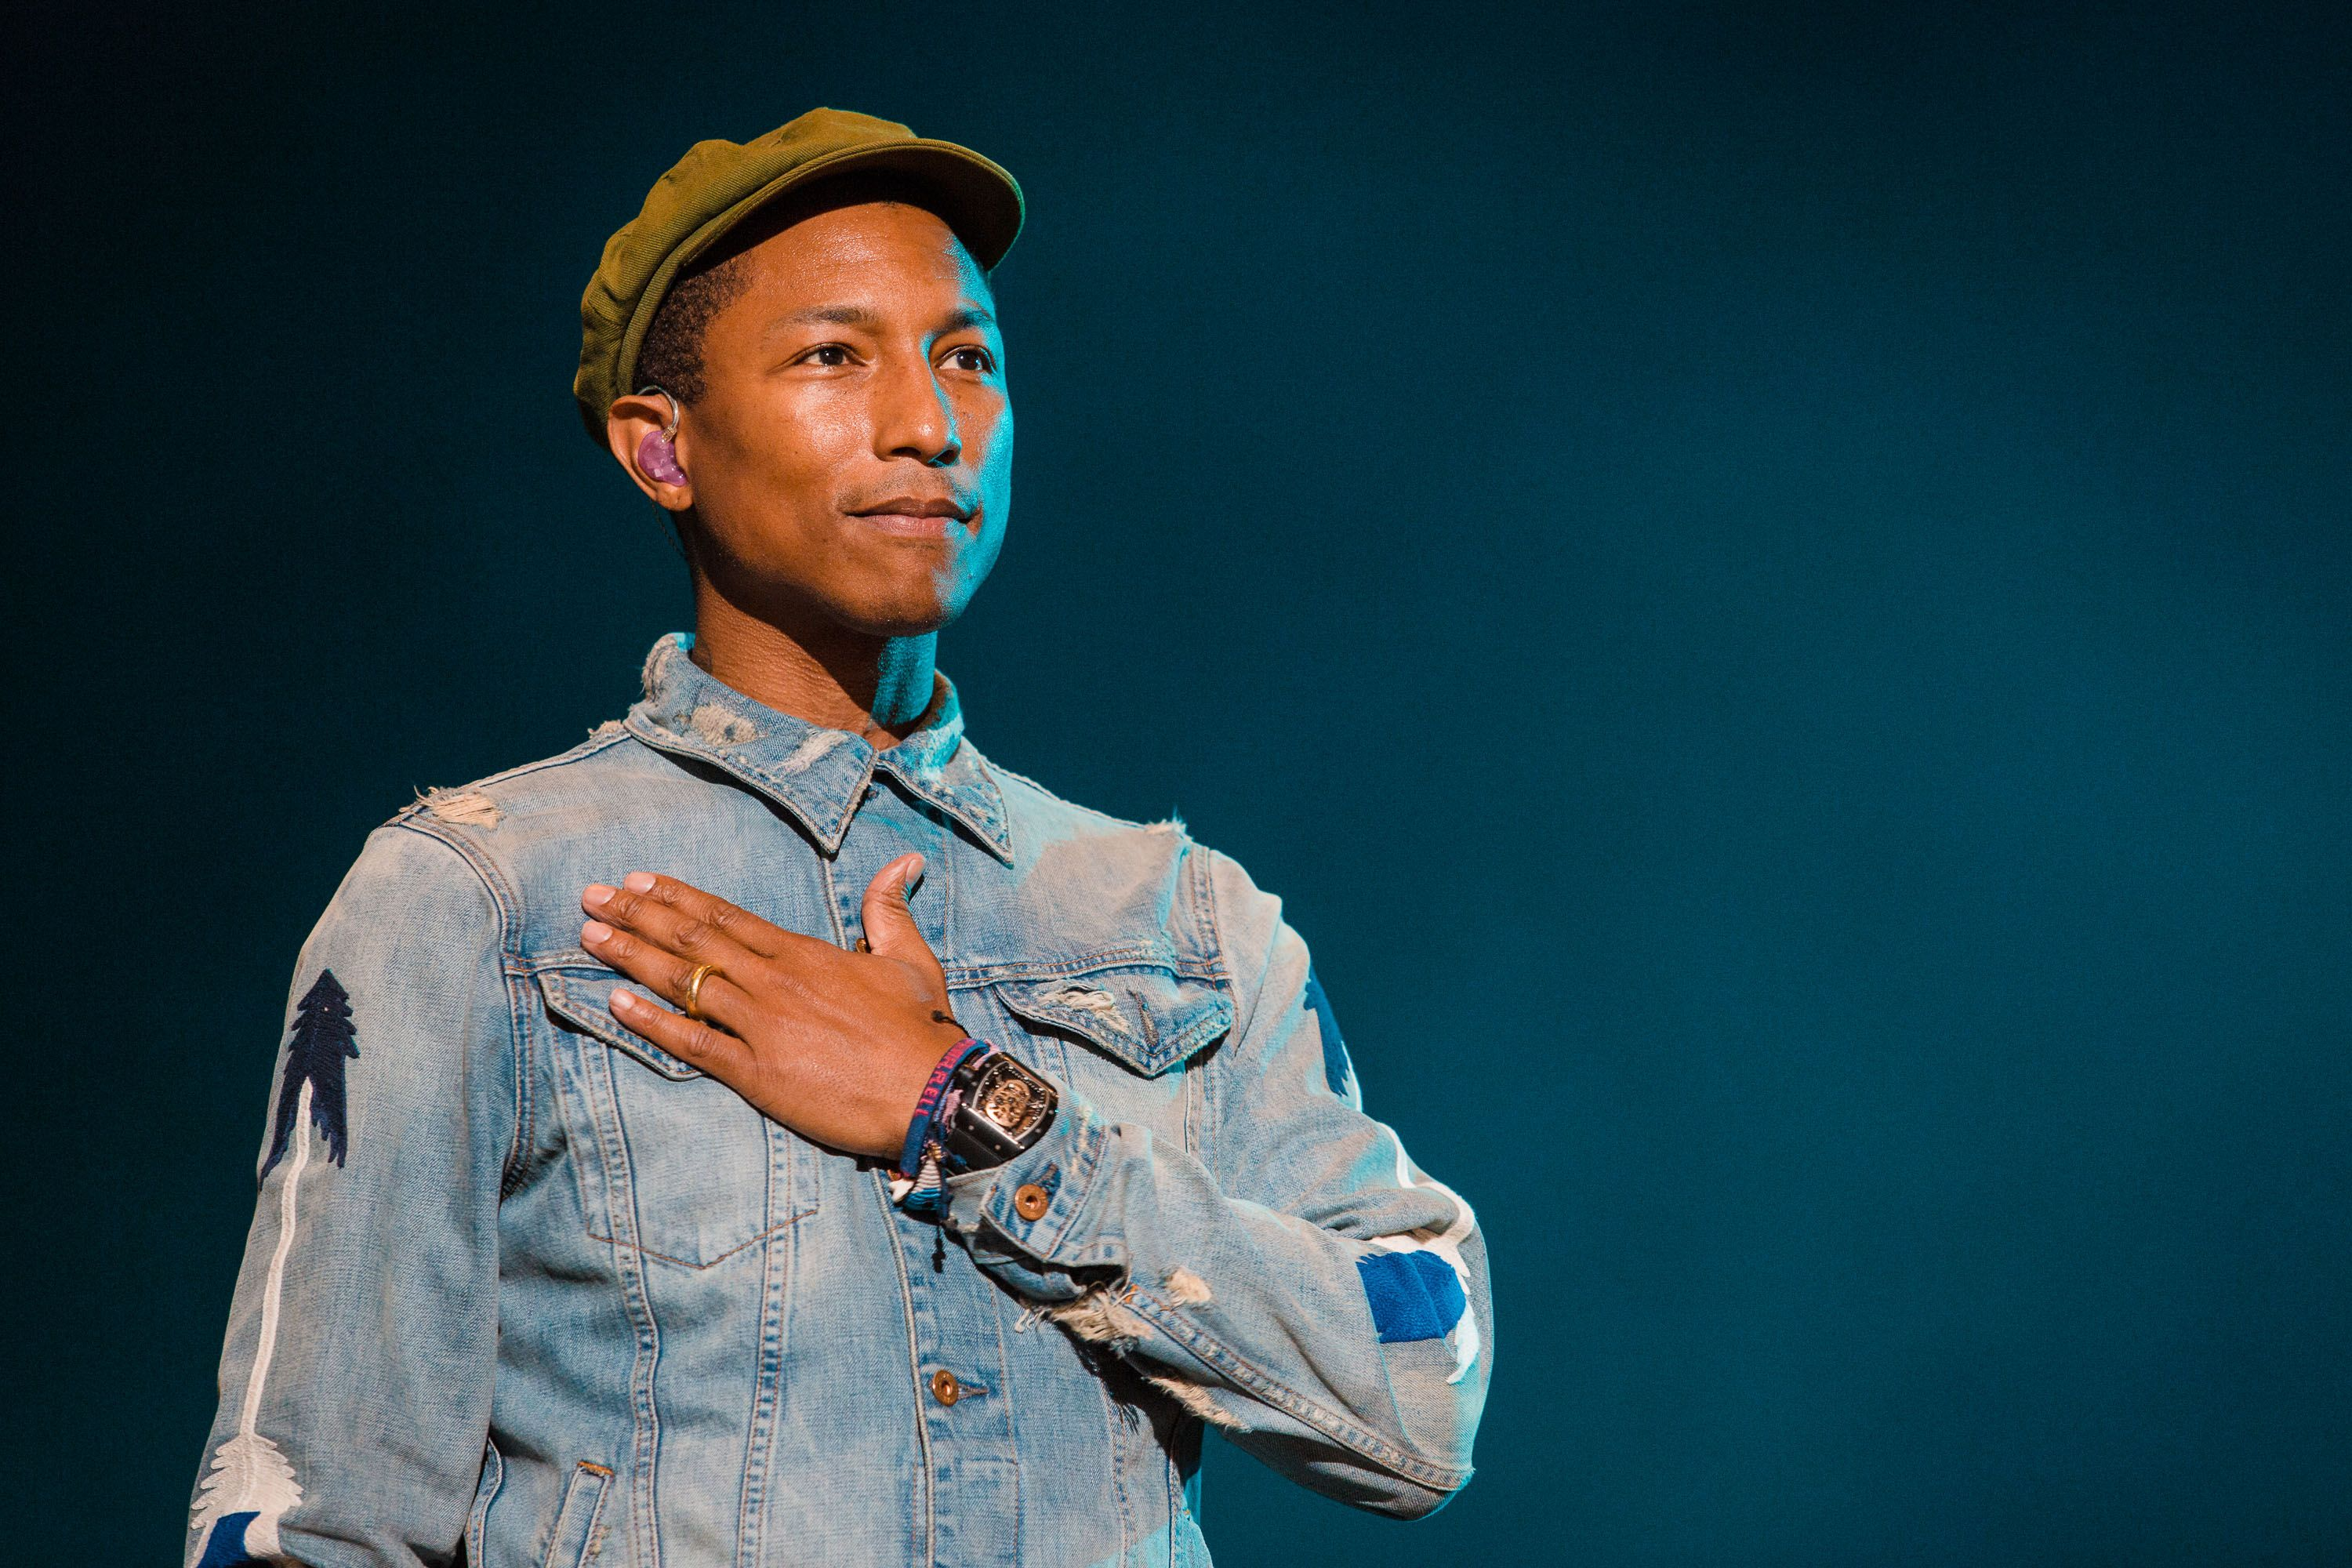 Pharrell Sends Cease-and-Desist to Trump for Playing 'Happy' At Rally Hours After Synagogue Shooting